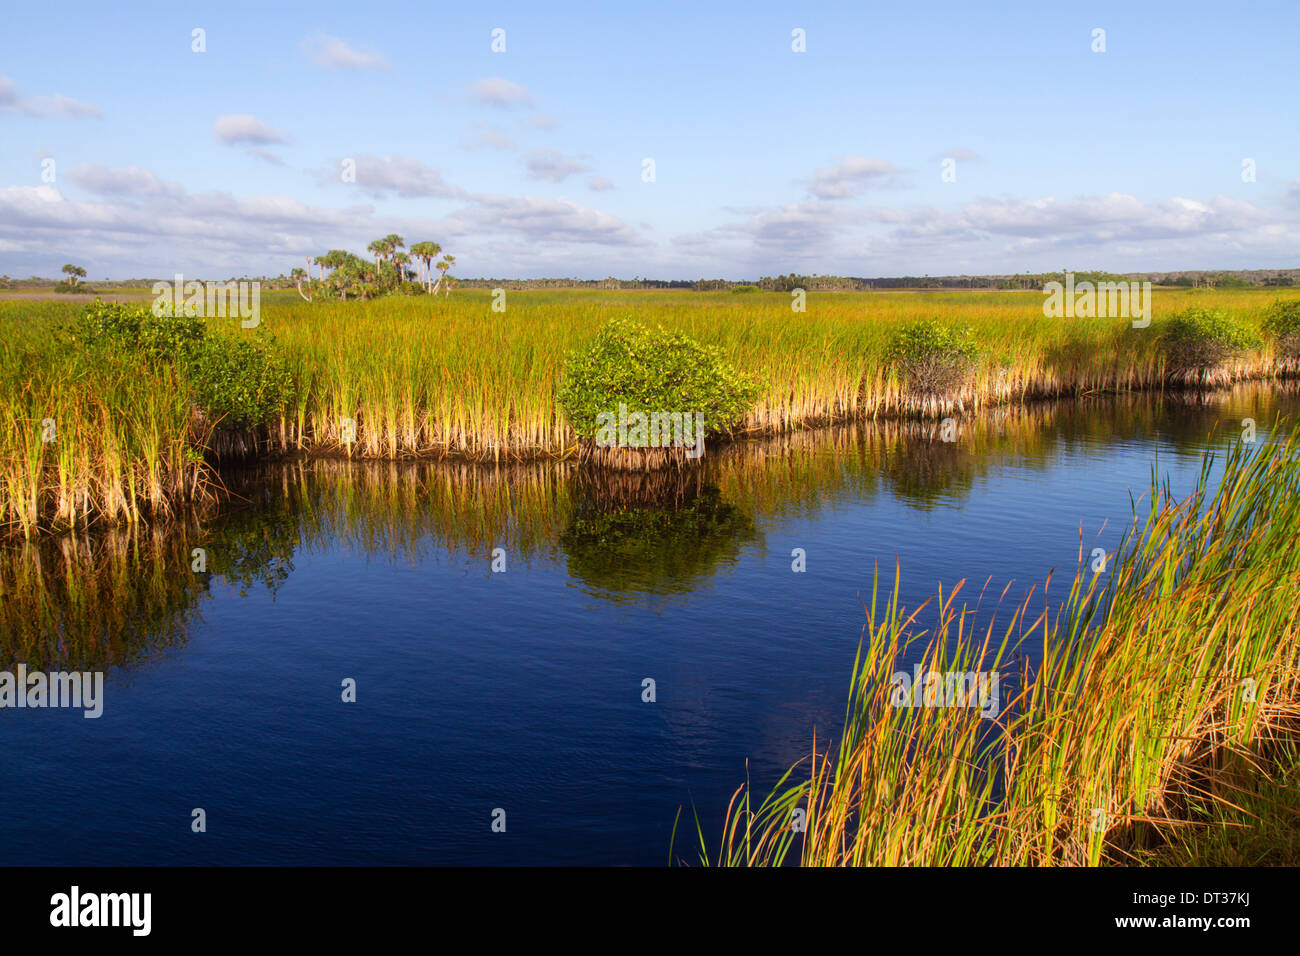 Everglades Florida Big Cypress National Preserve Tamiami Trail US 41 sawgrass palm tree hammock water mangrove - Stock Image